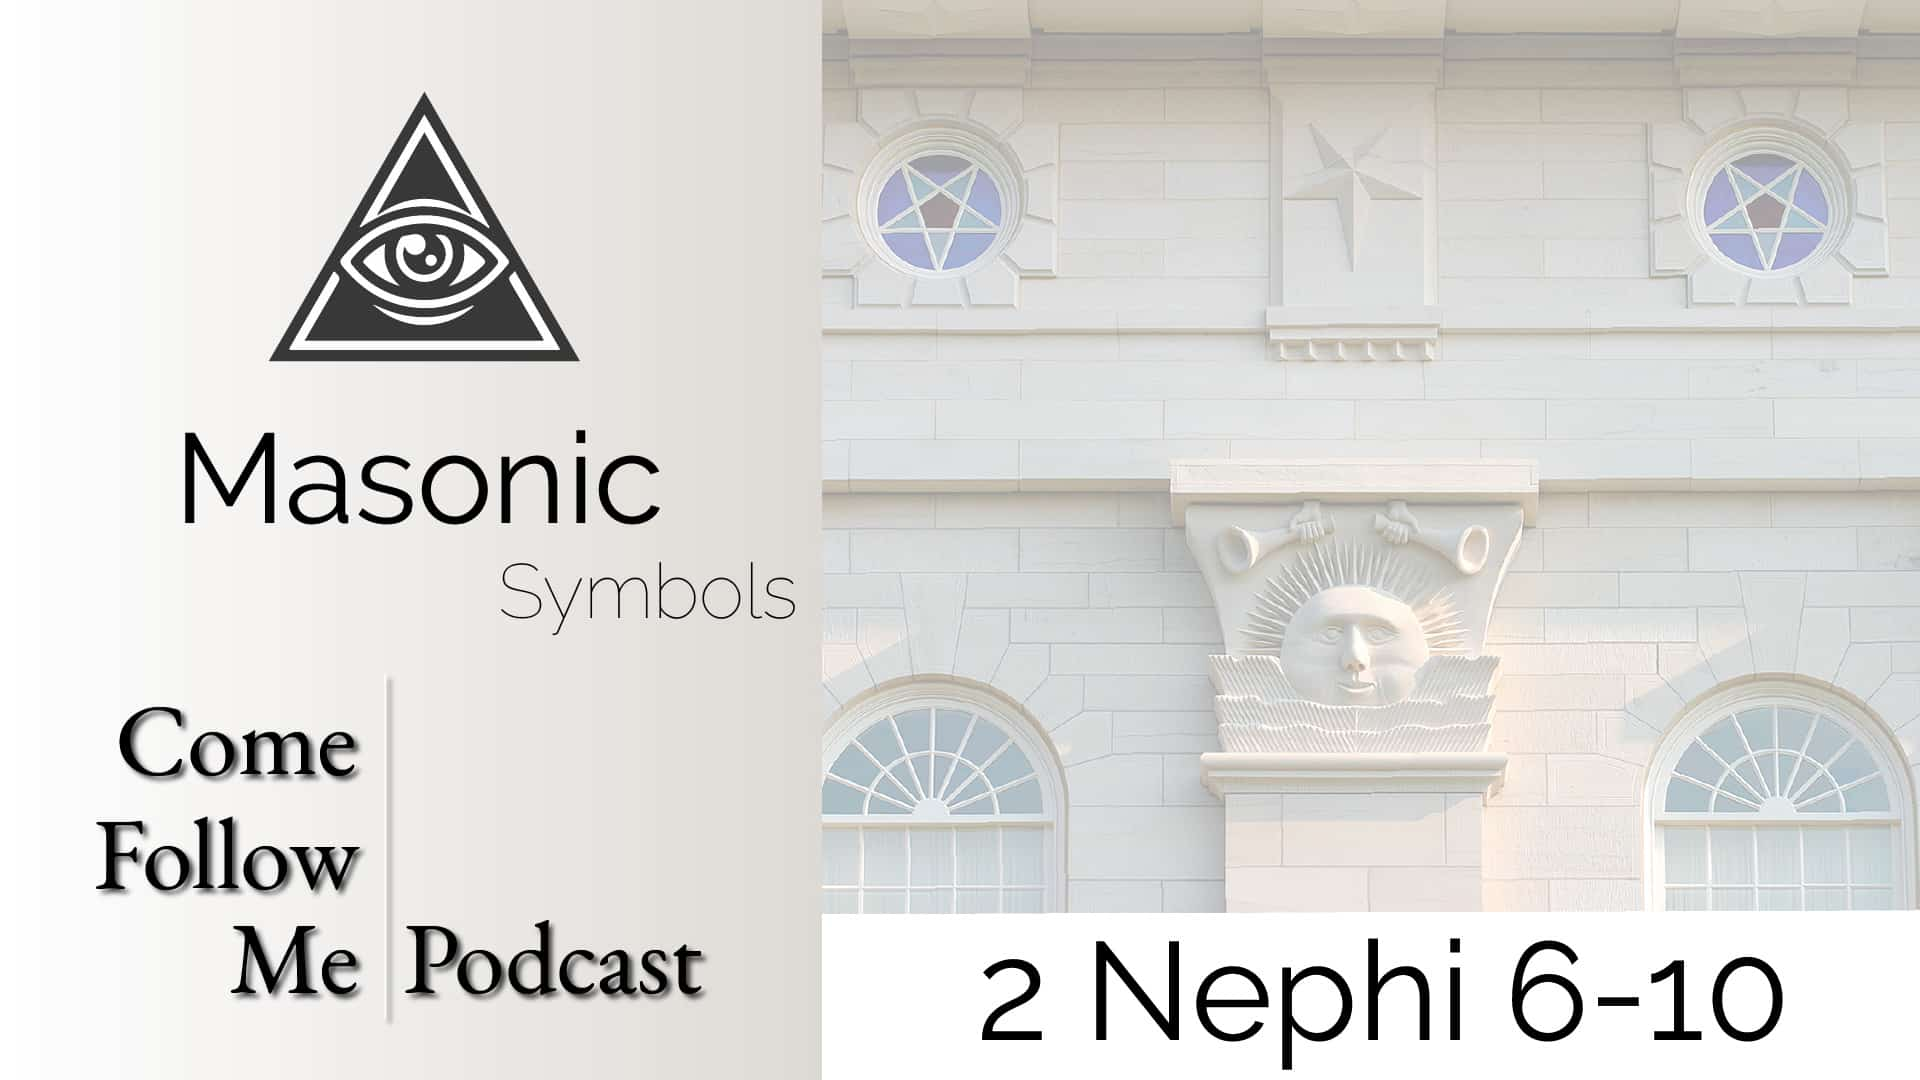 Masonic Symbols in the LDS Church